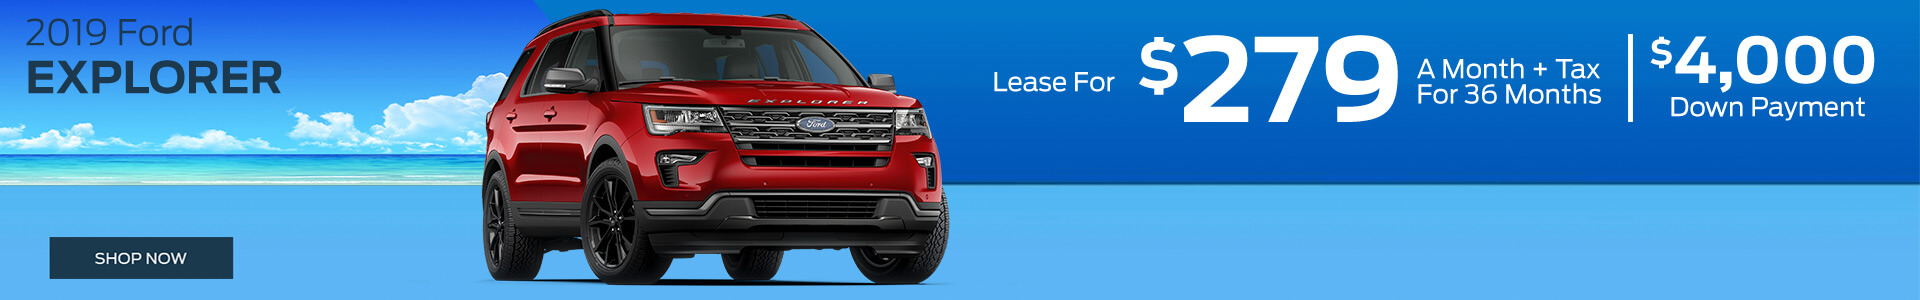 Ford Explorer - Lease for $279